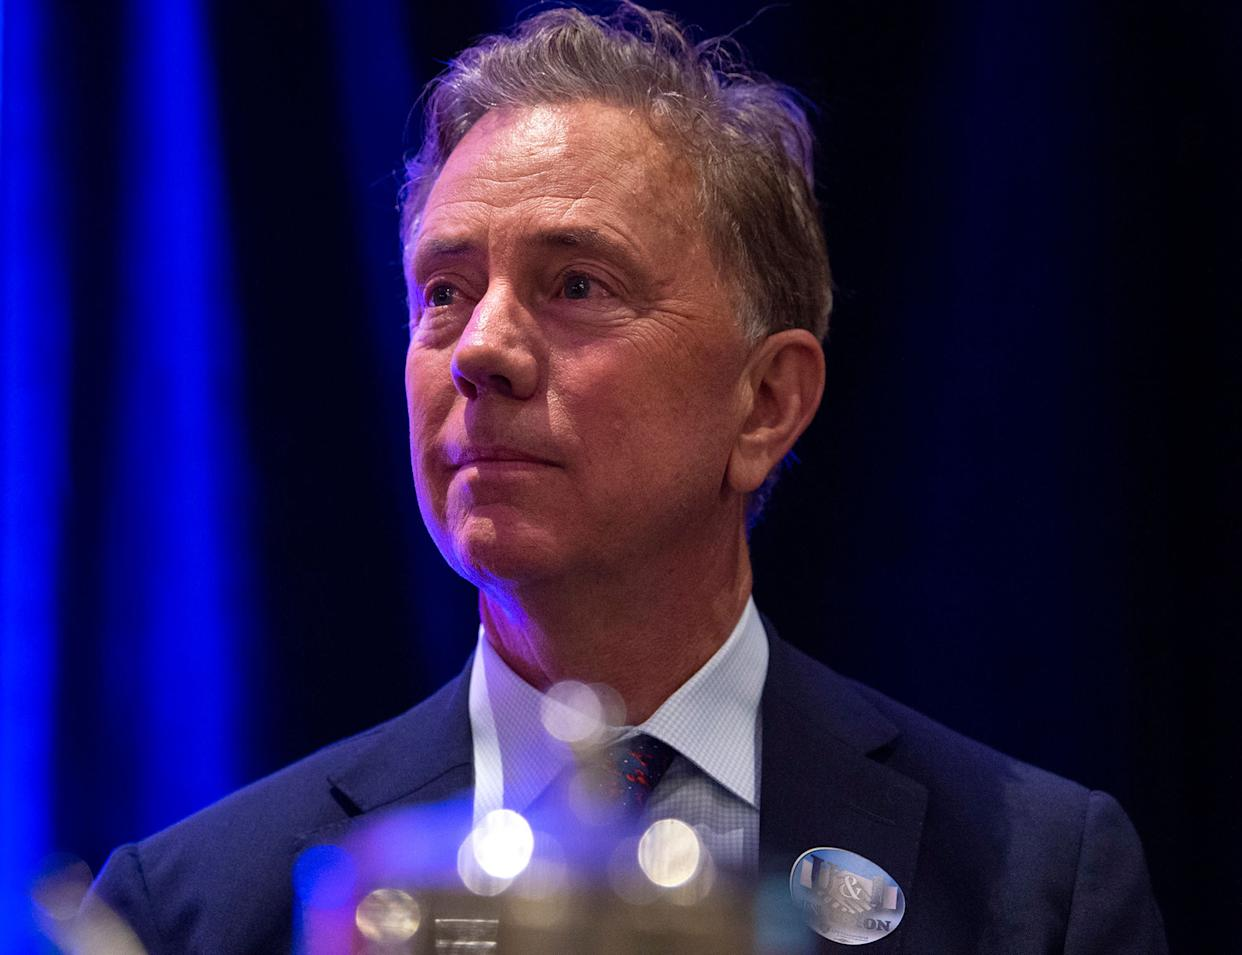 Democrat Ned Lamont will be Connecticut's next governor. (Photo: Hartford Courant via Getty Images)